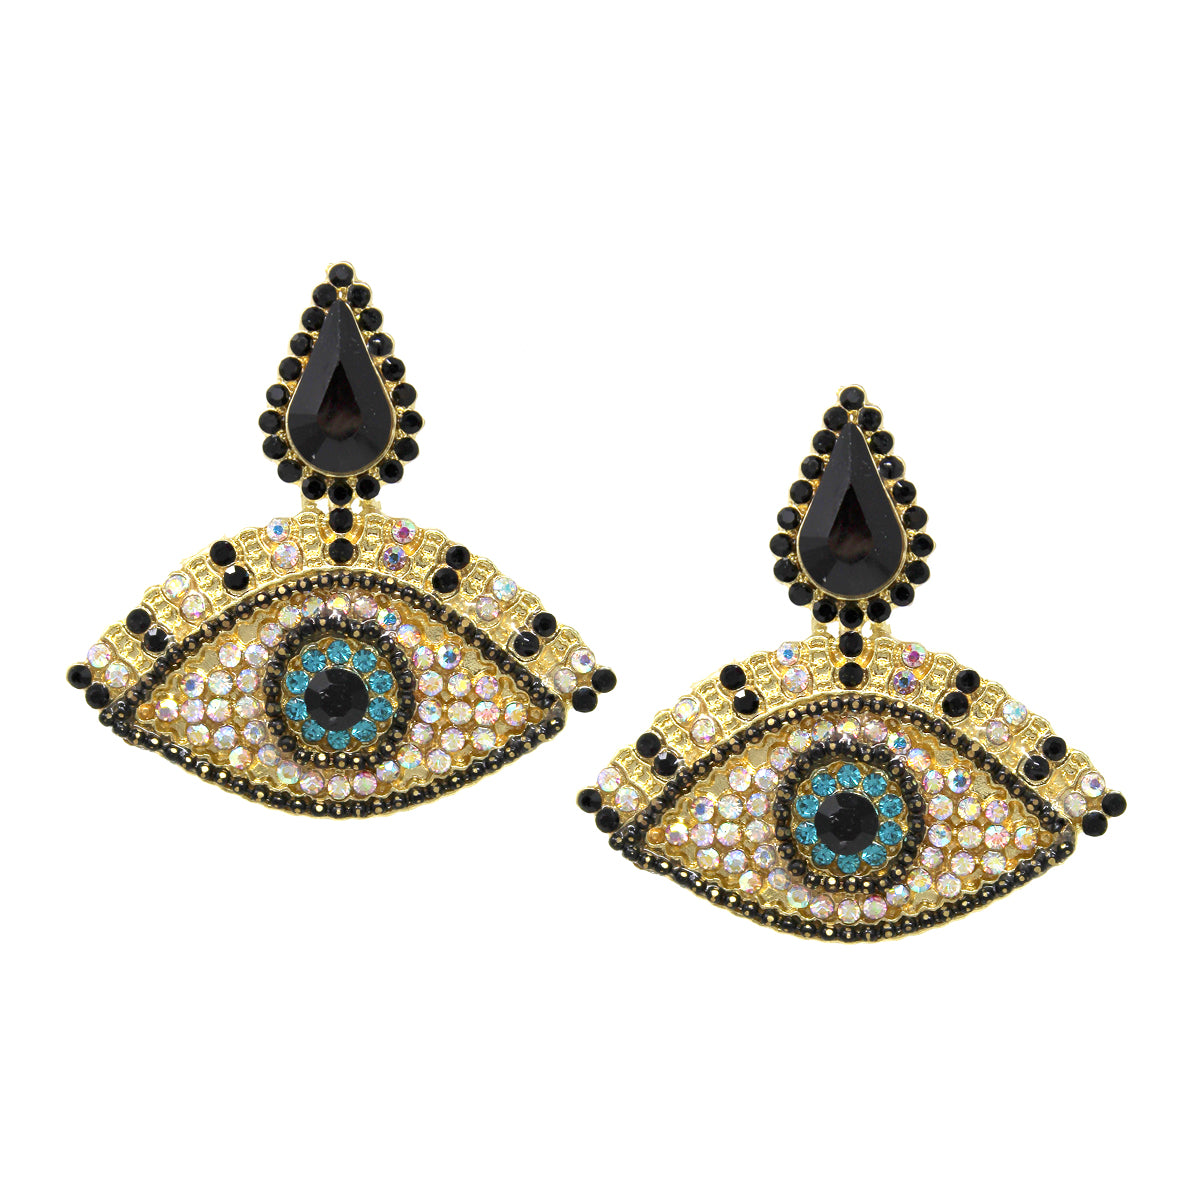 Rhinestone Pave Evil Eye Earrings